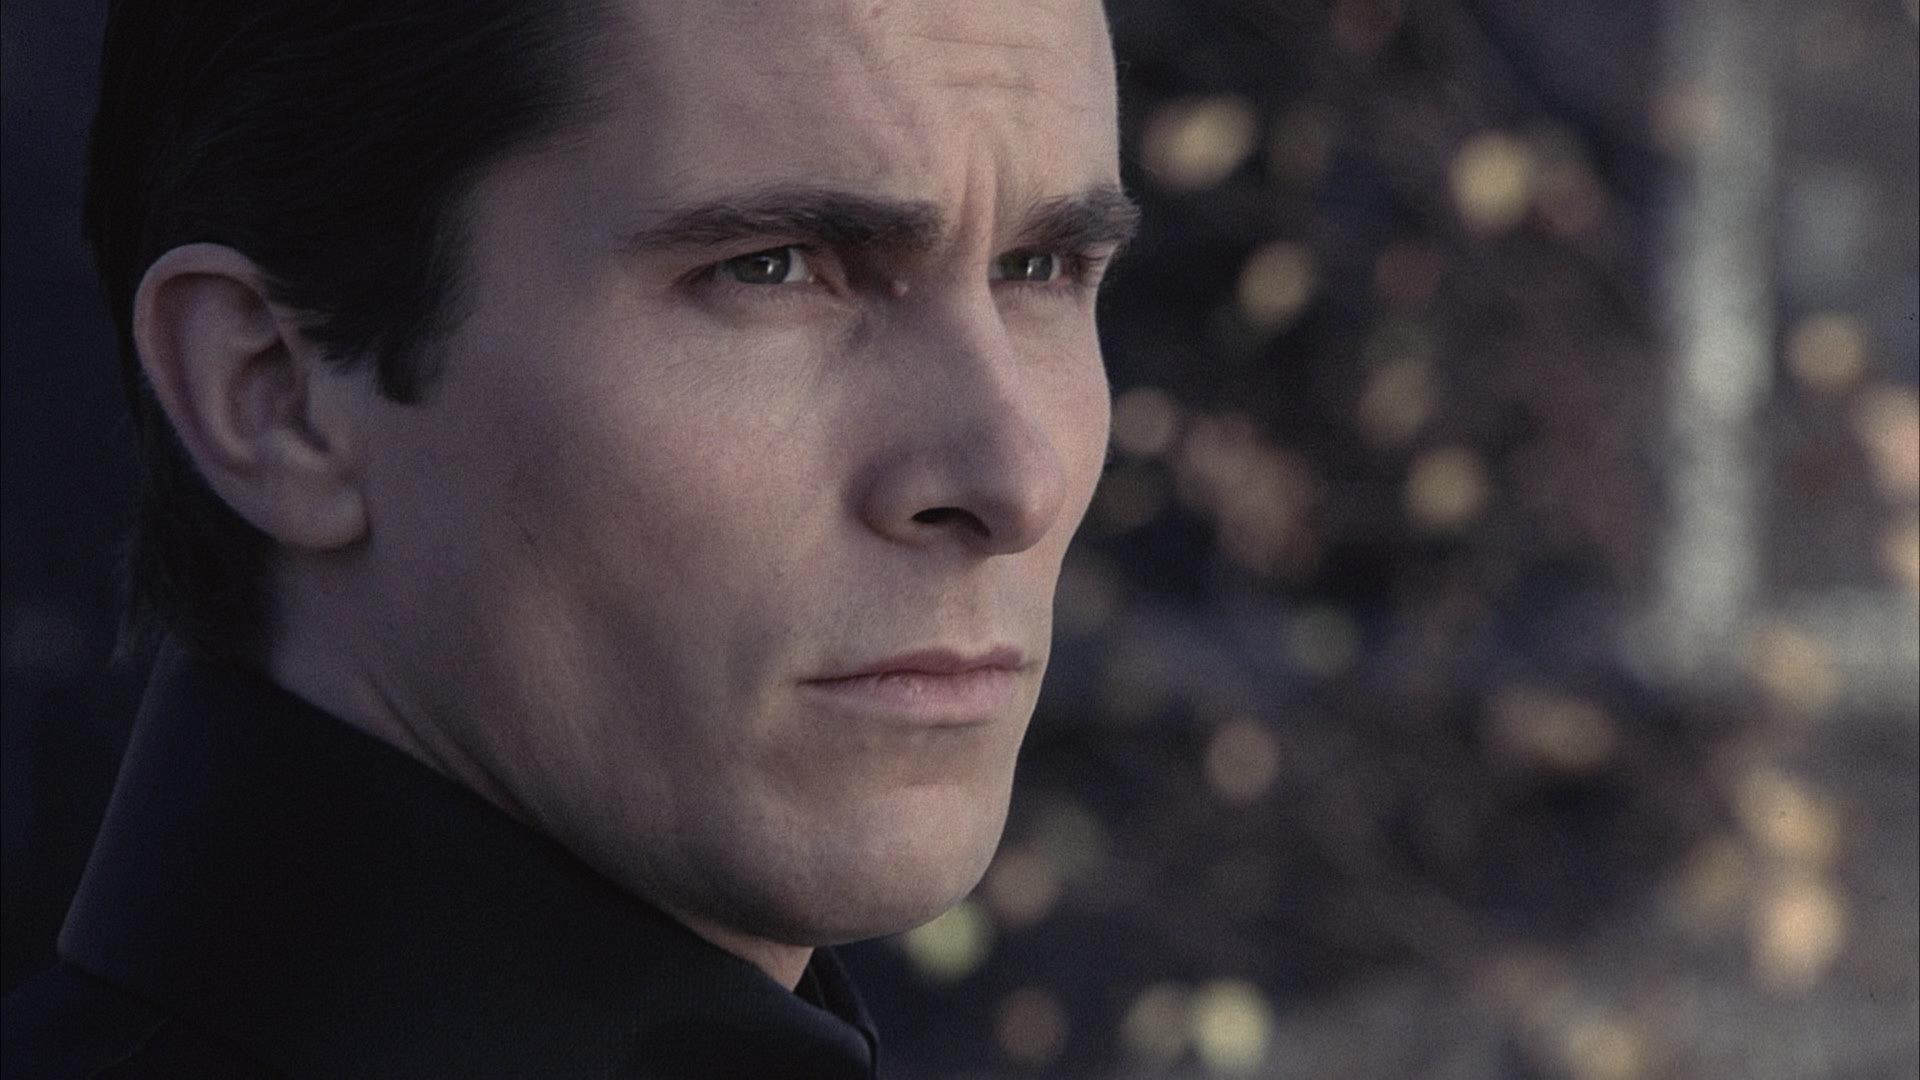 1920x1080 - Christian Bale Wallpapers 7